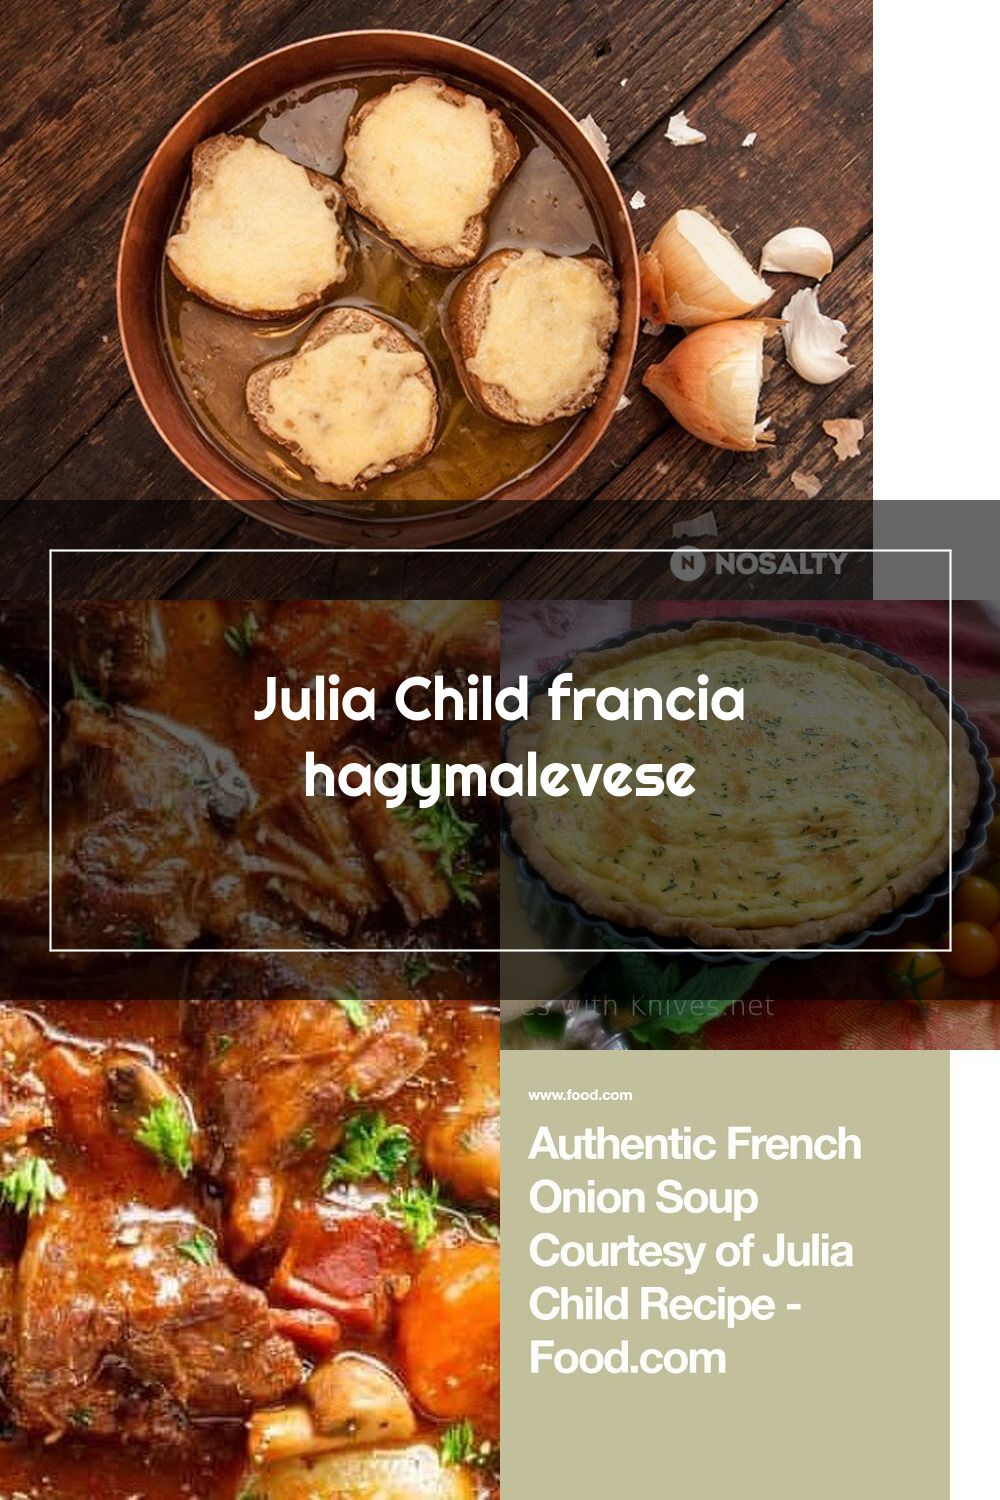 Julia Child Francia Hagymalevese Nosalty In 2020 Julia Child Recipes Kids Meals French Onion Soup